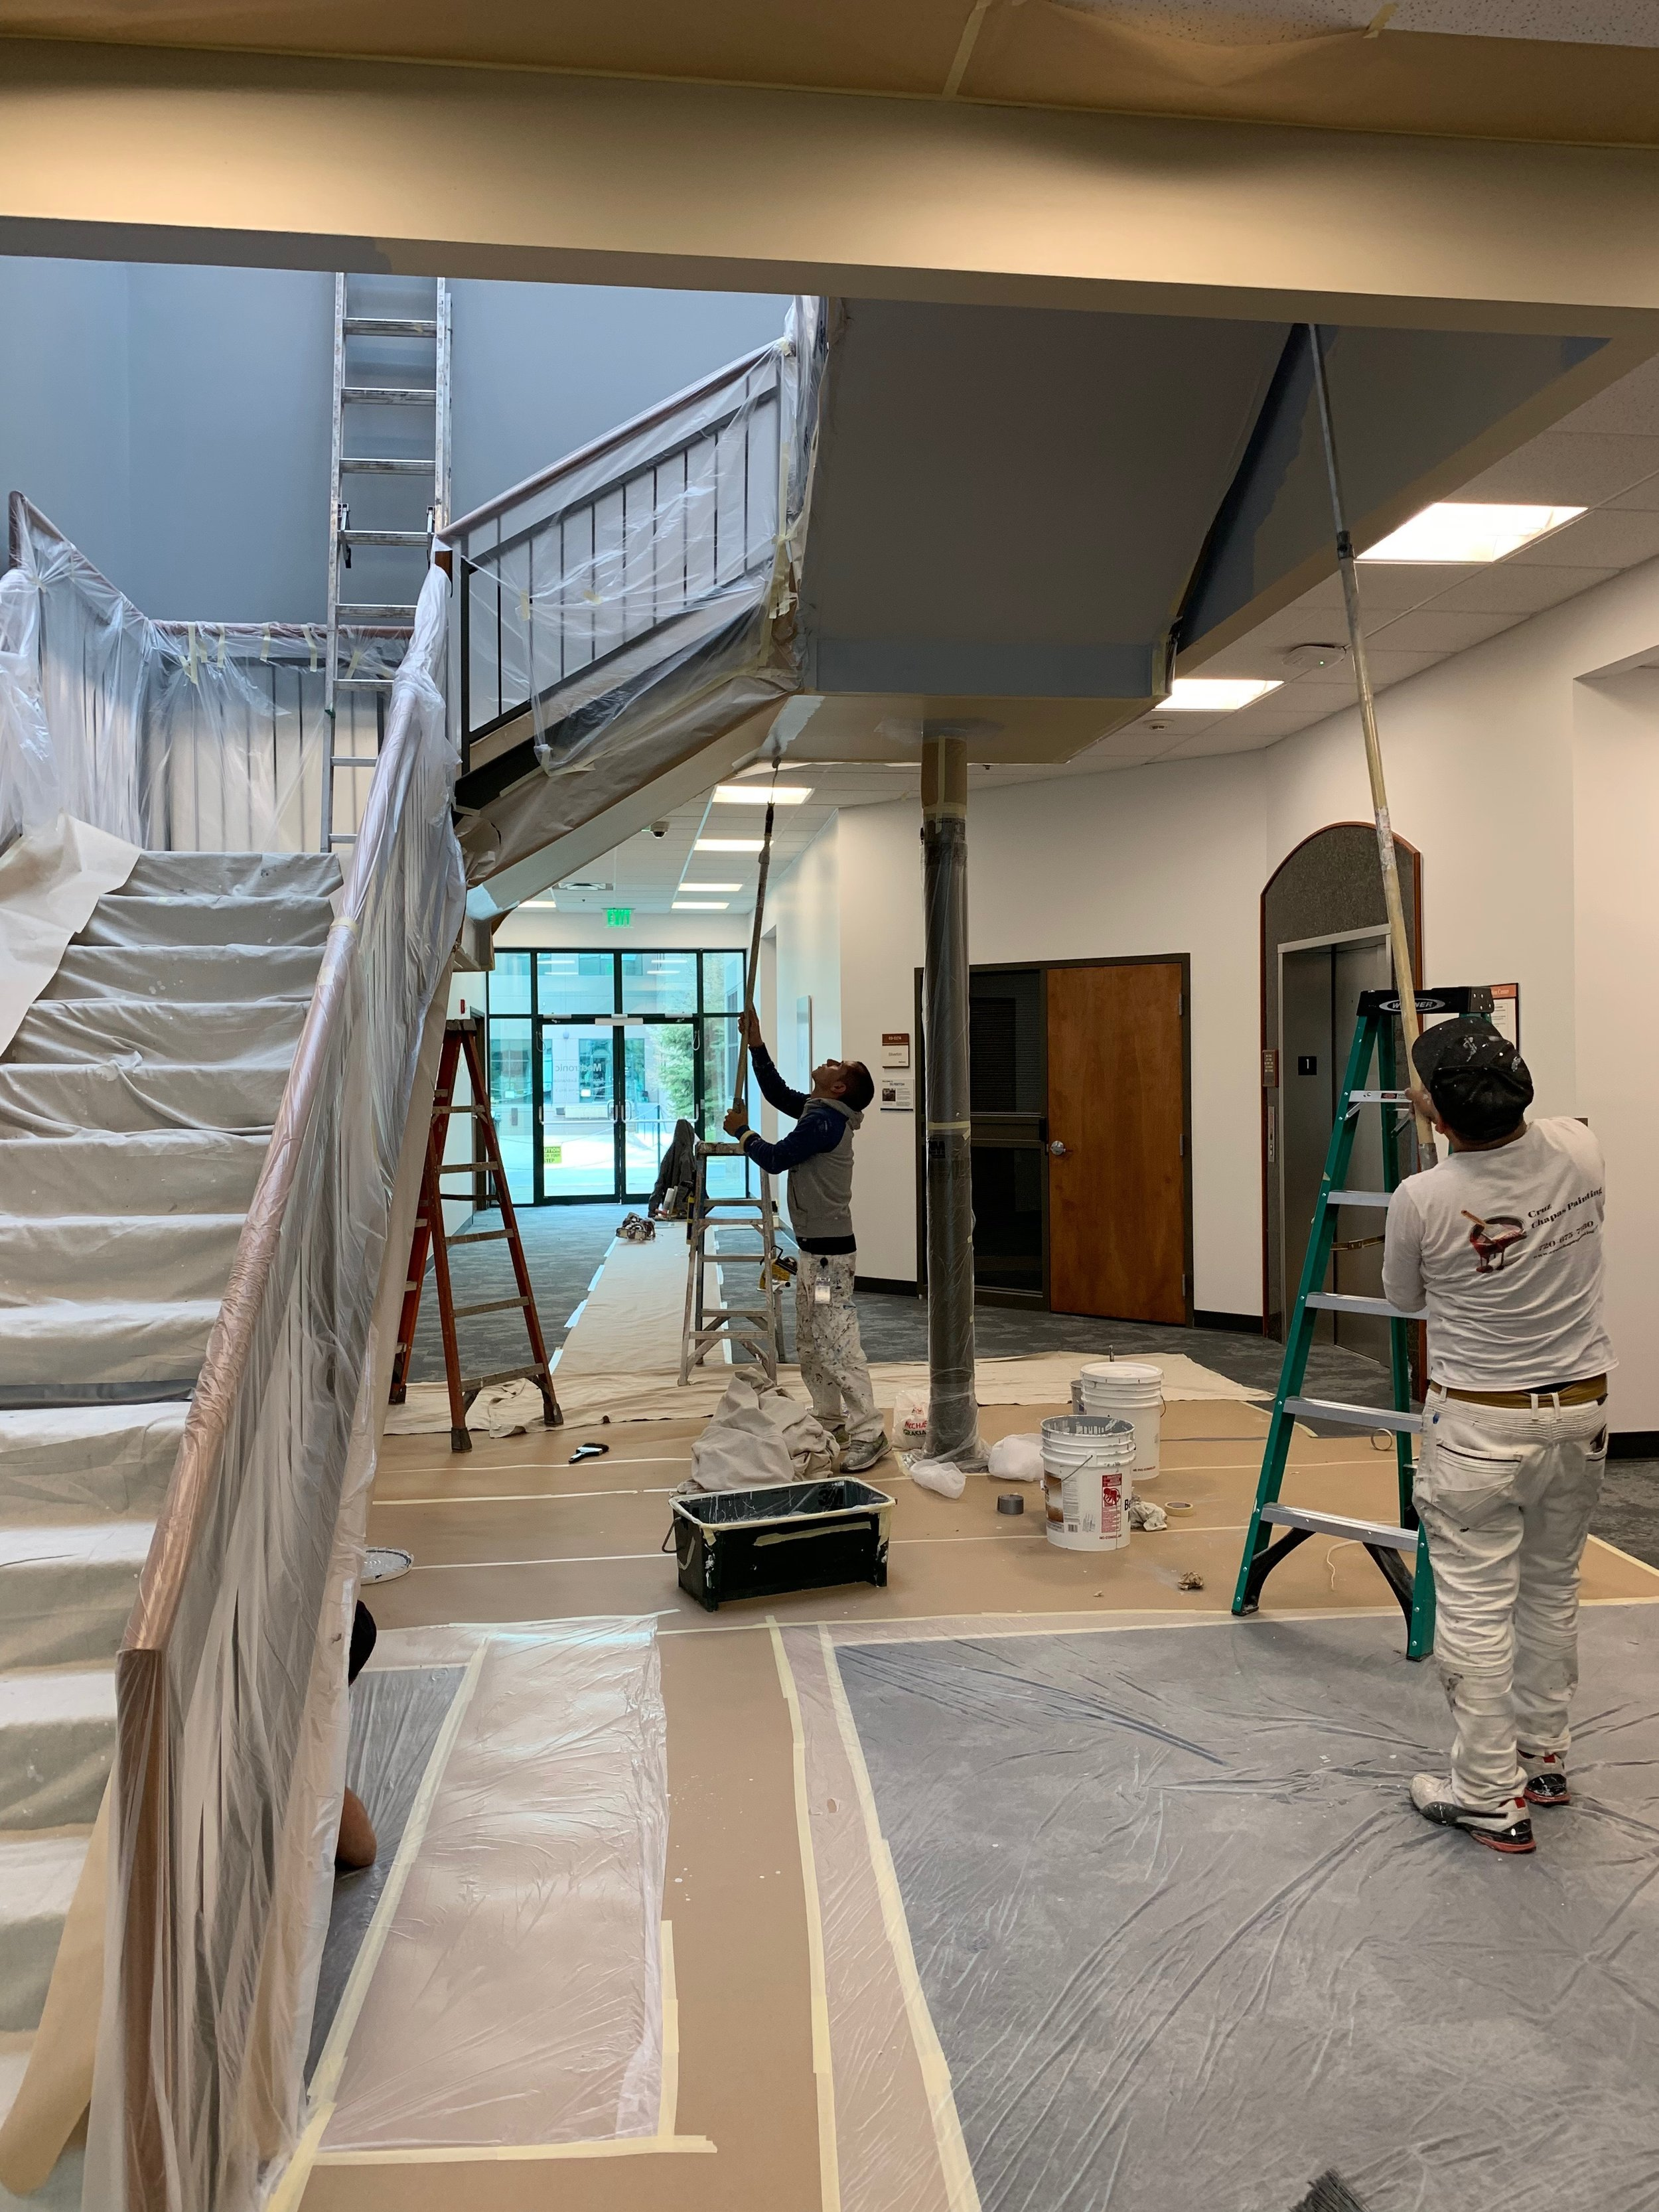 Medtronic building three first floor and core stairwell 4-27-19 #2.JPG